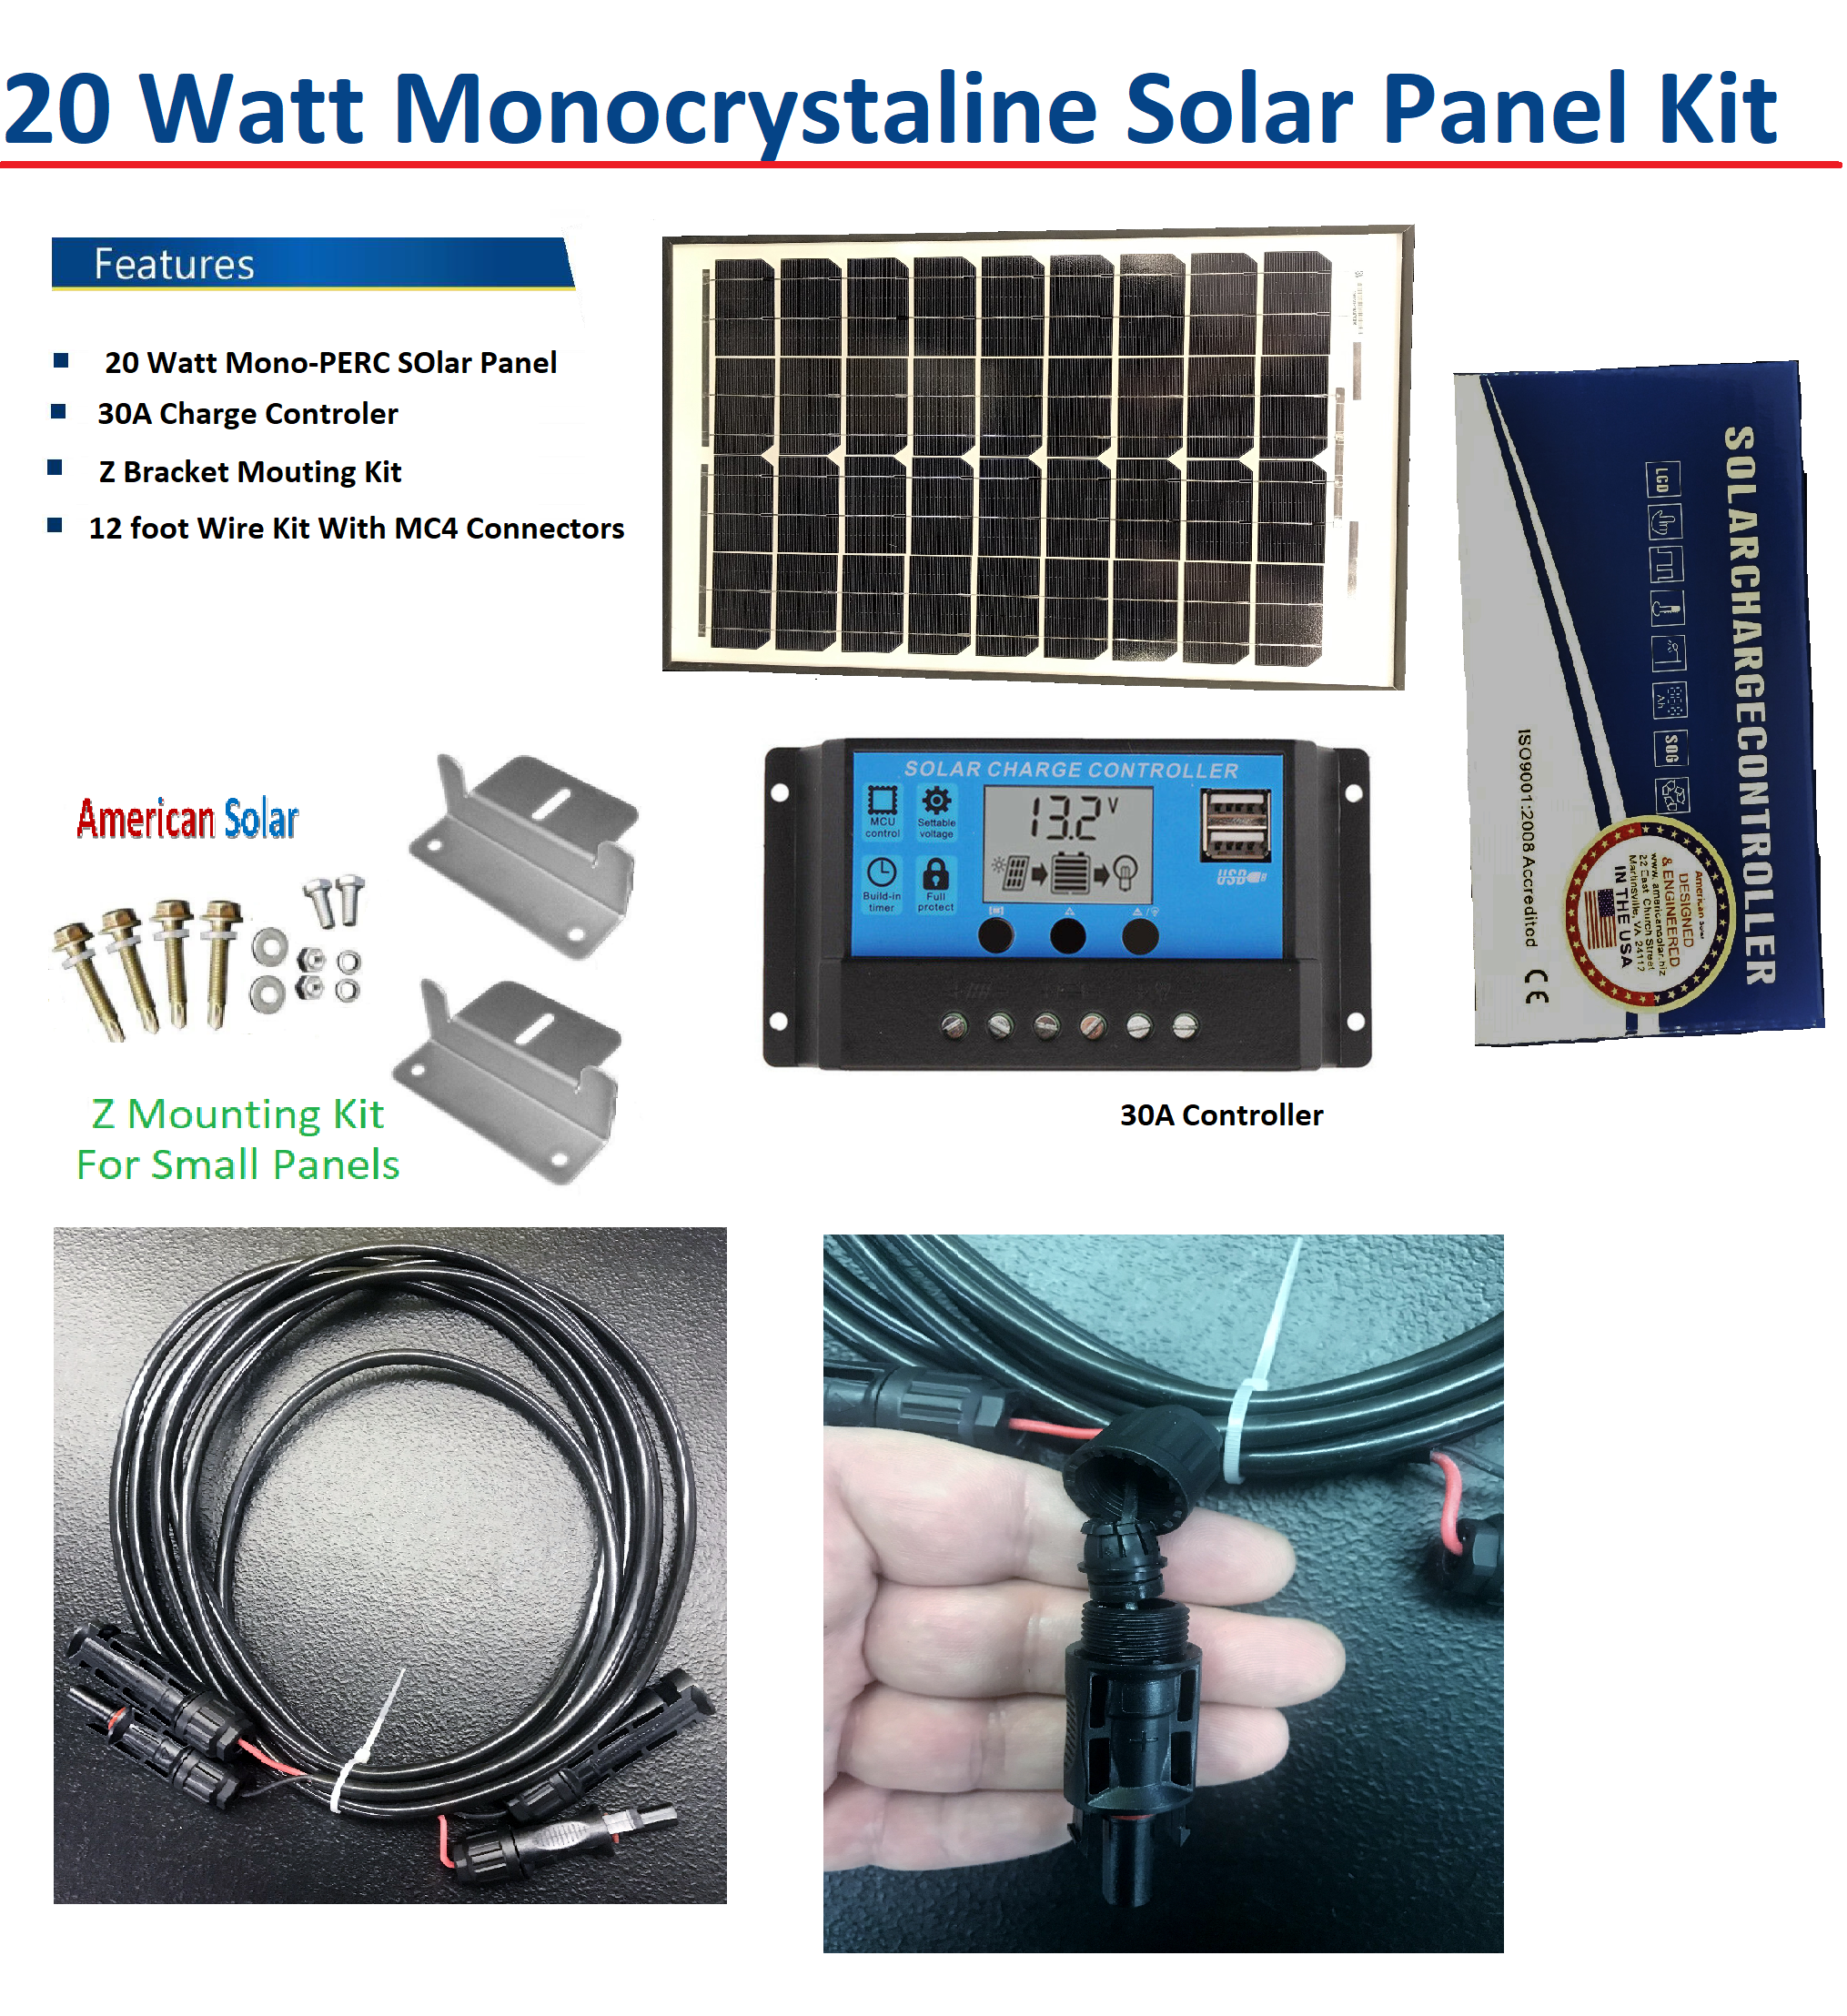 100 watt solar kit 1 30a Charge Controller 2#sets Z brackets